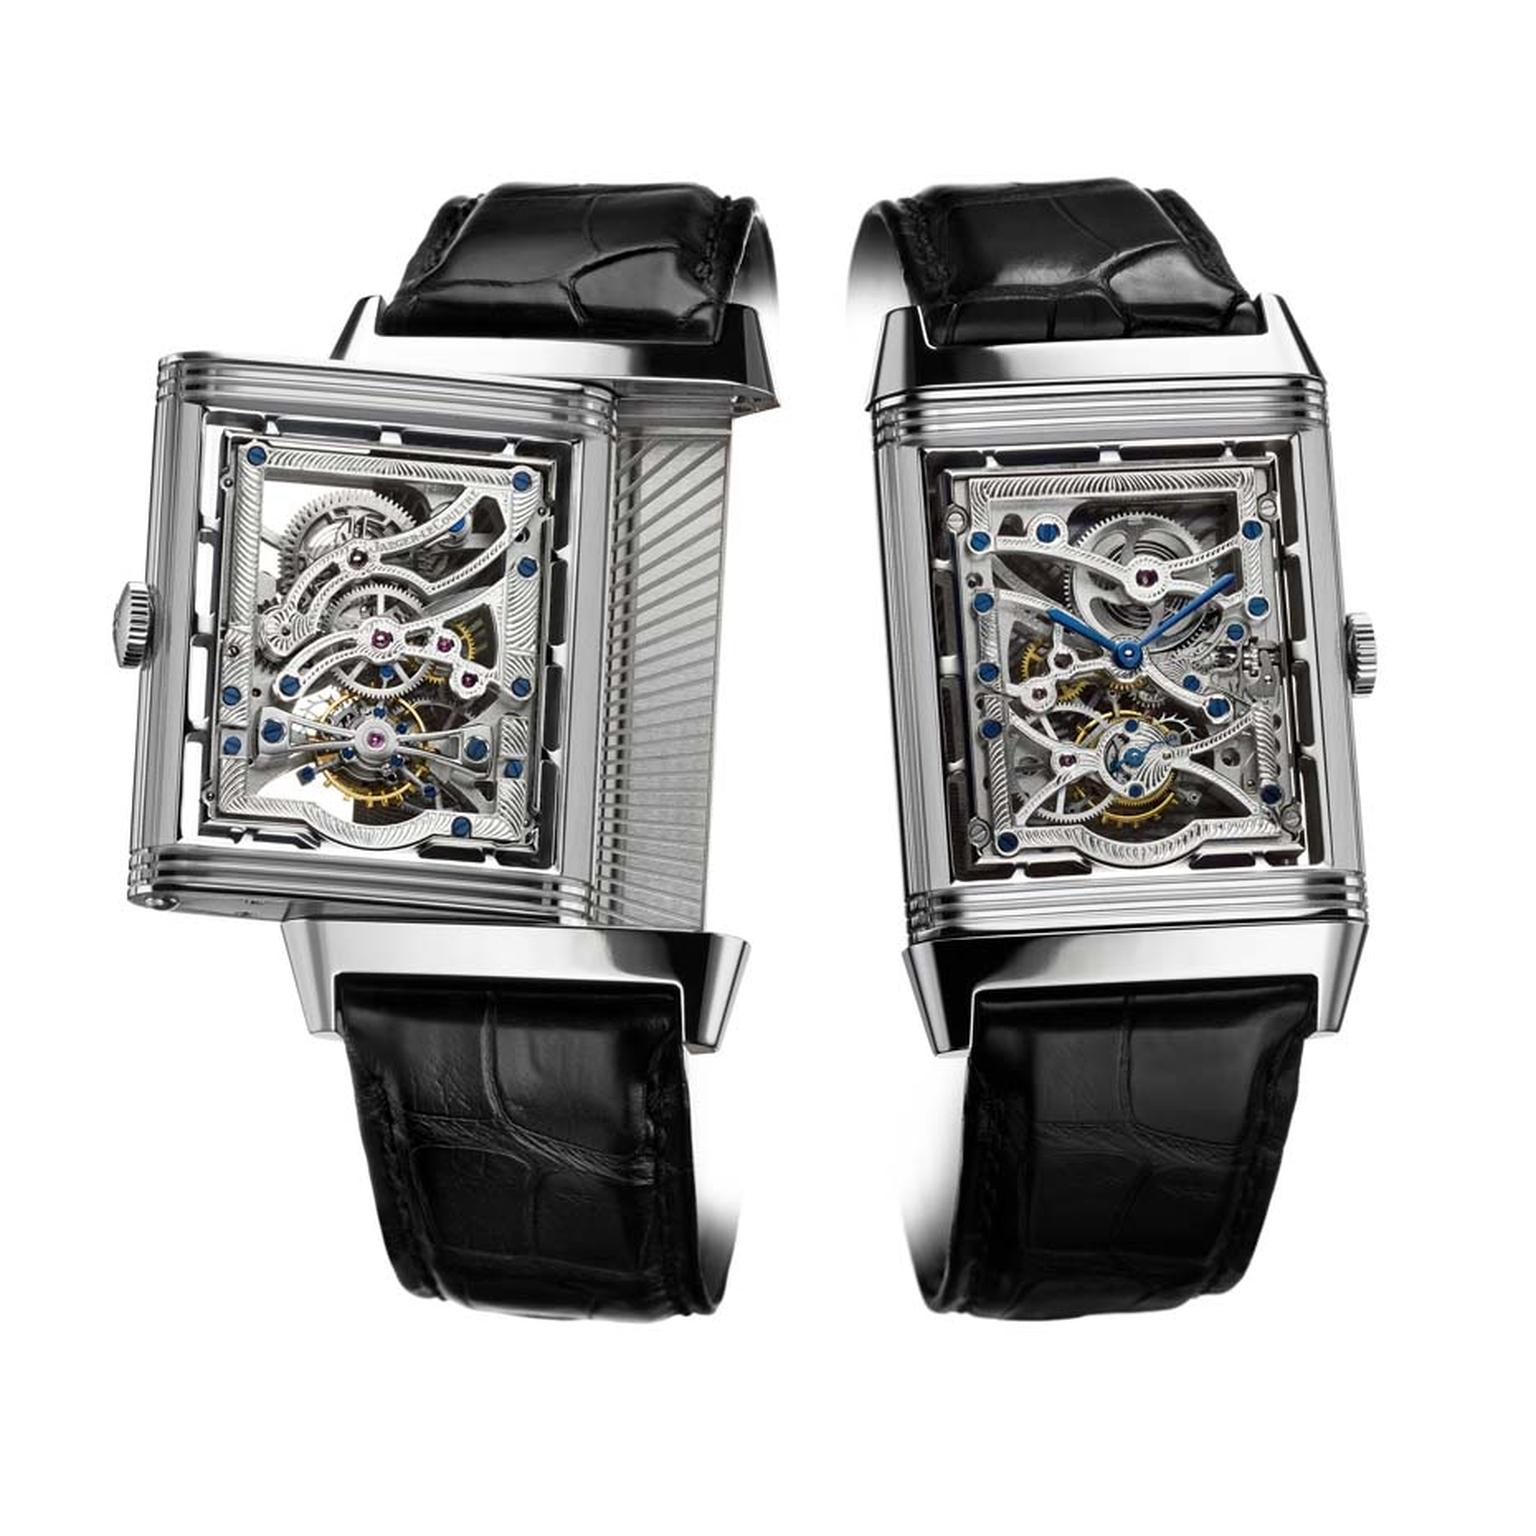 Jaeger-LeCoultre's Hybris Artistica Collection Grande Reverso Tourbillon Squelette watch. The pivoting part of the case is now sealed with two sapphire crystals, revealing the intricate openworked movement